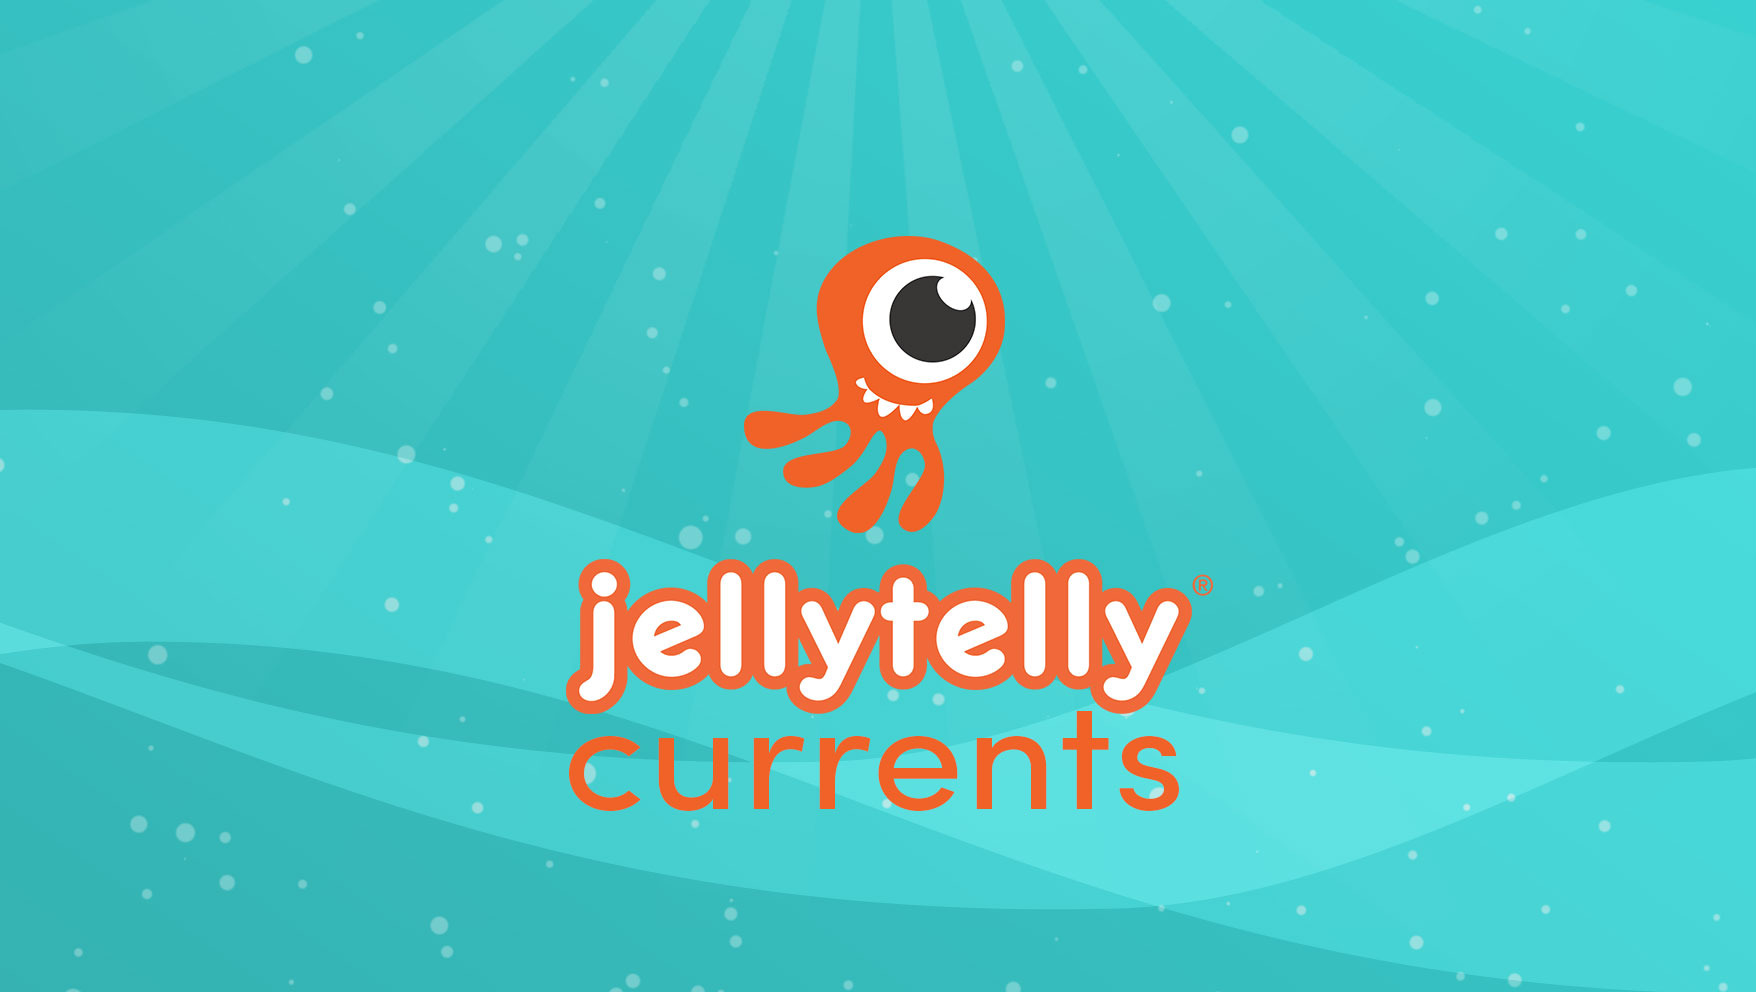 JellyTelly Currents 2/10/17